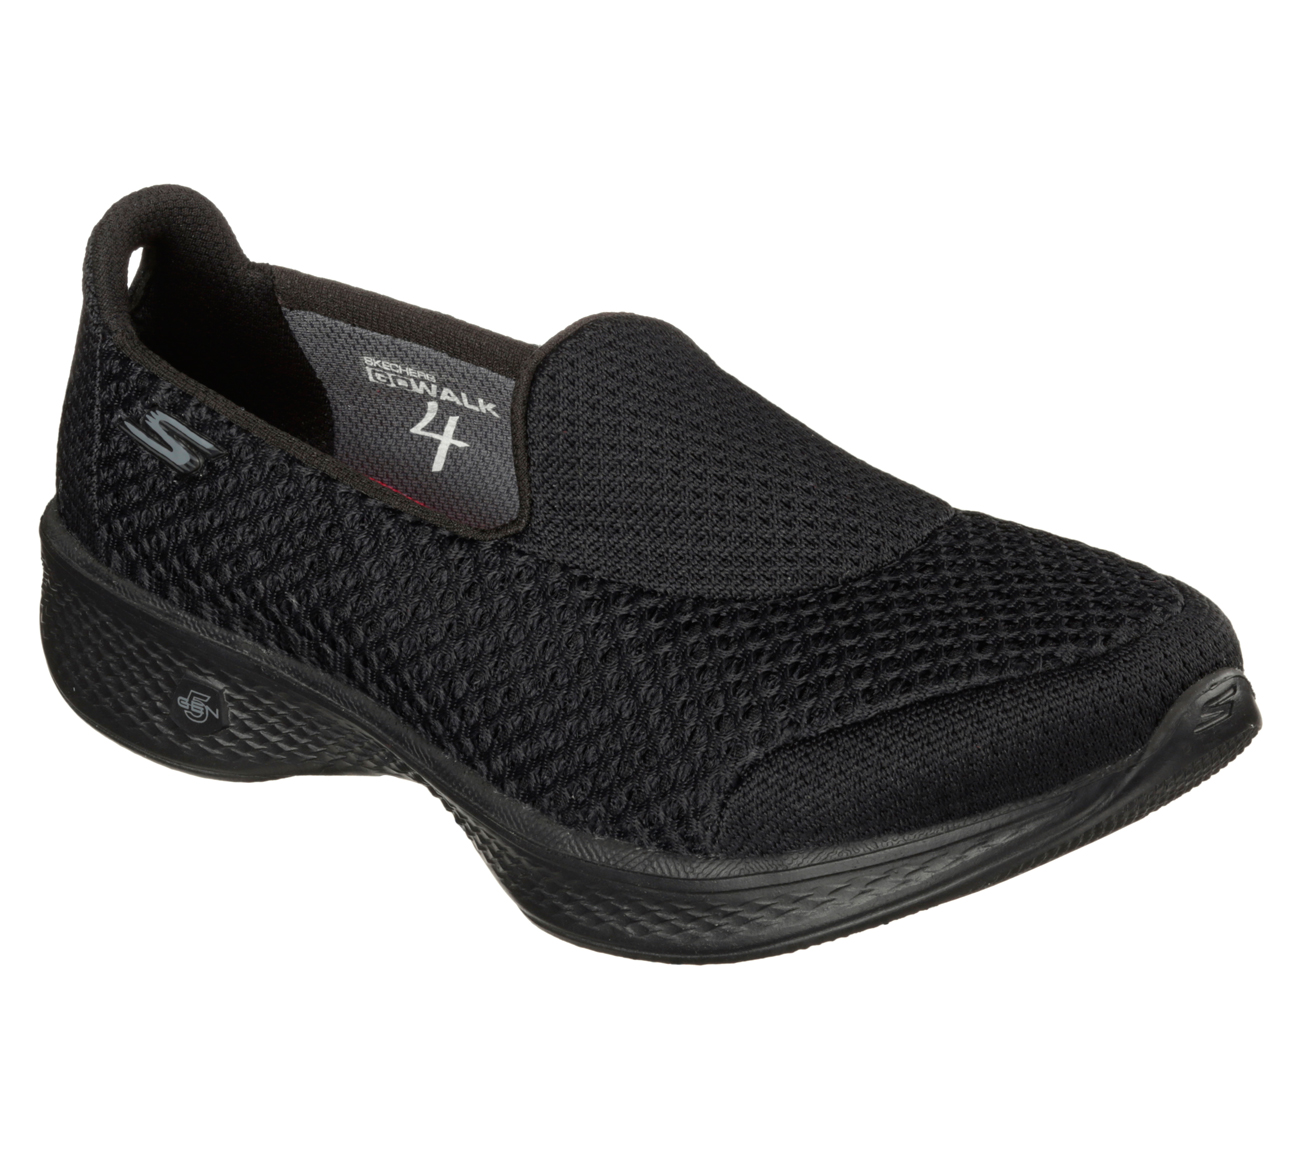 Buy SKECHERS Skechers GOwalk 4 - Kindle Skechers ...